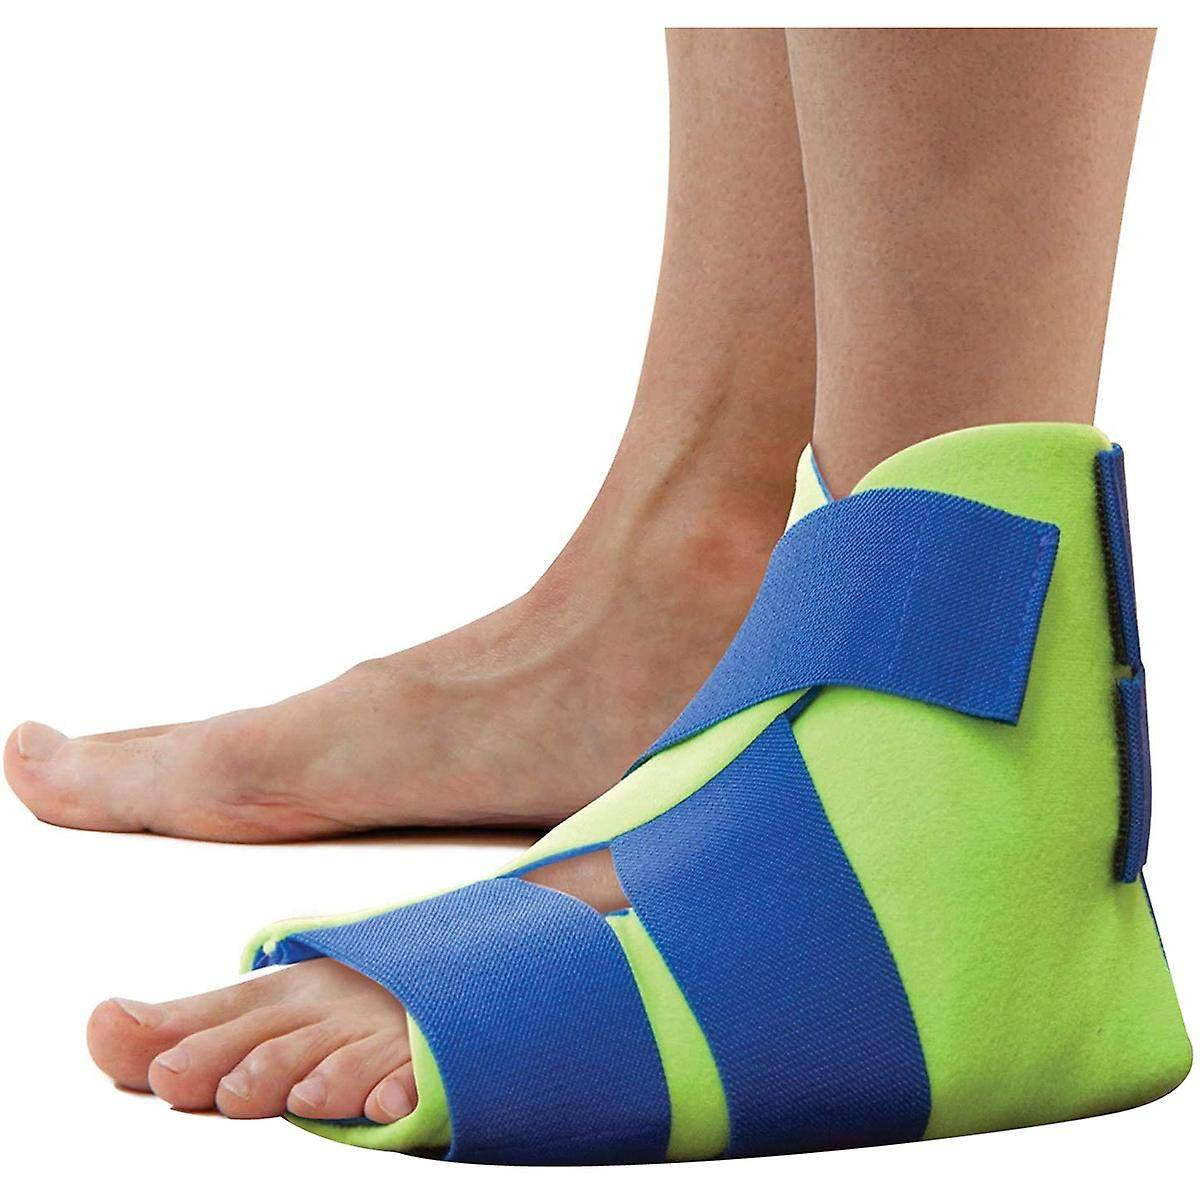 Polar Ice Foot and Ankle Wrap - Universal - Cryothérapie Cold Therapy Pack Vert/bleu One Size